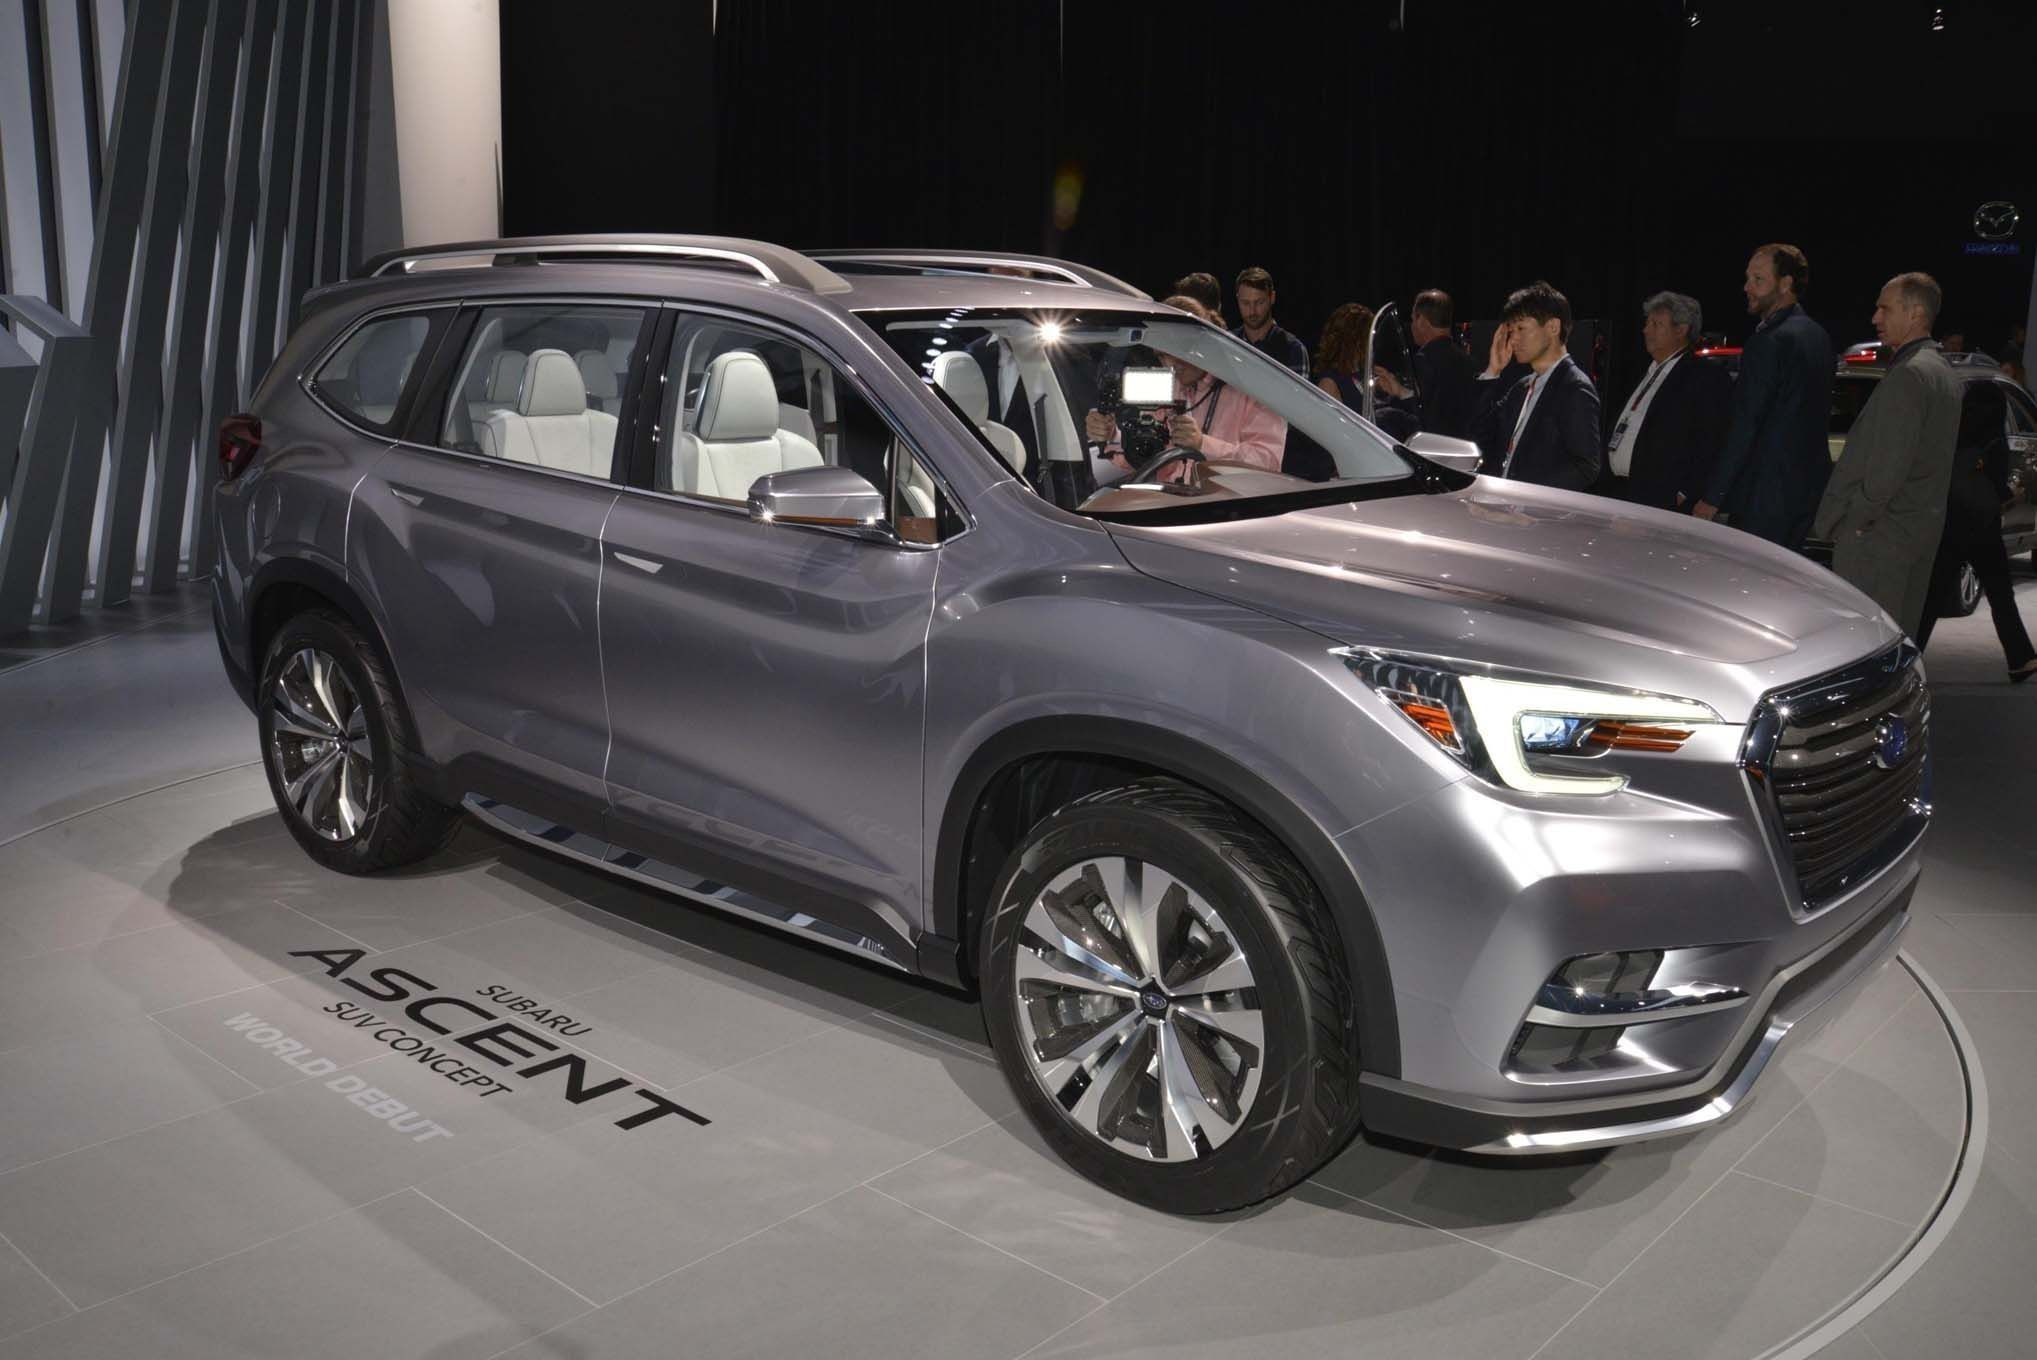 2019 Subaru Availability Exterior And Interior Review Car Review 2019 Subaru Roda Kemudi Kendaraan